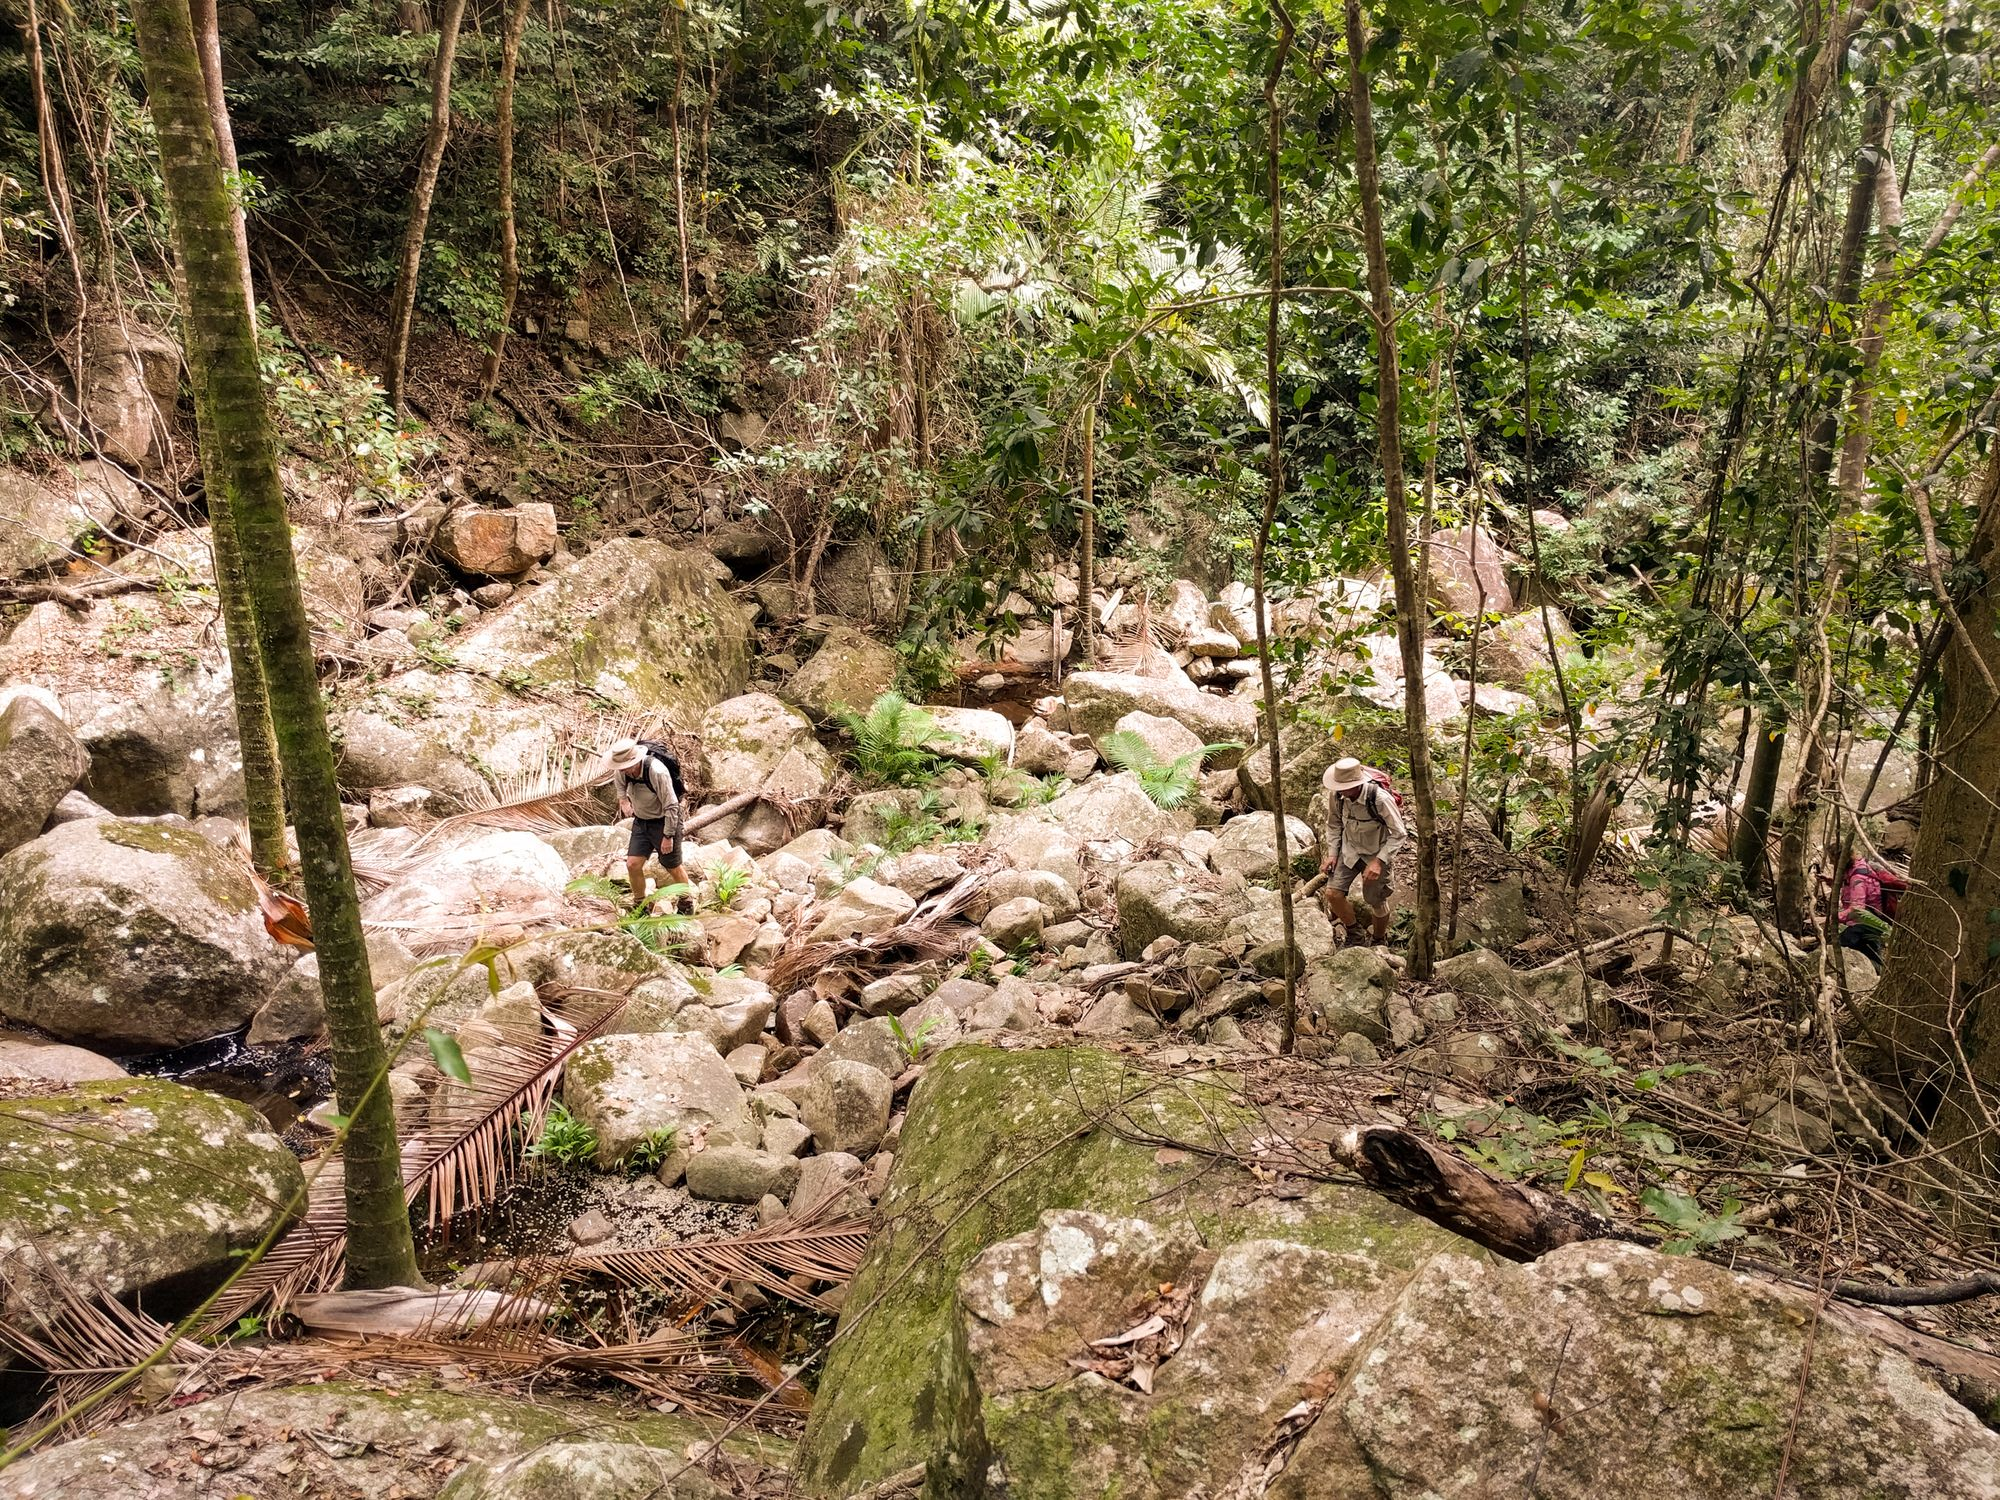 st margaret creek townsville bushwalking club